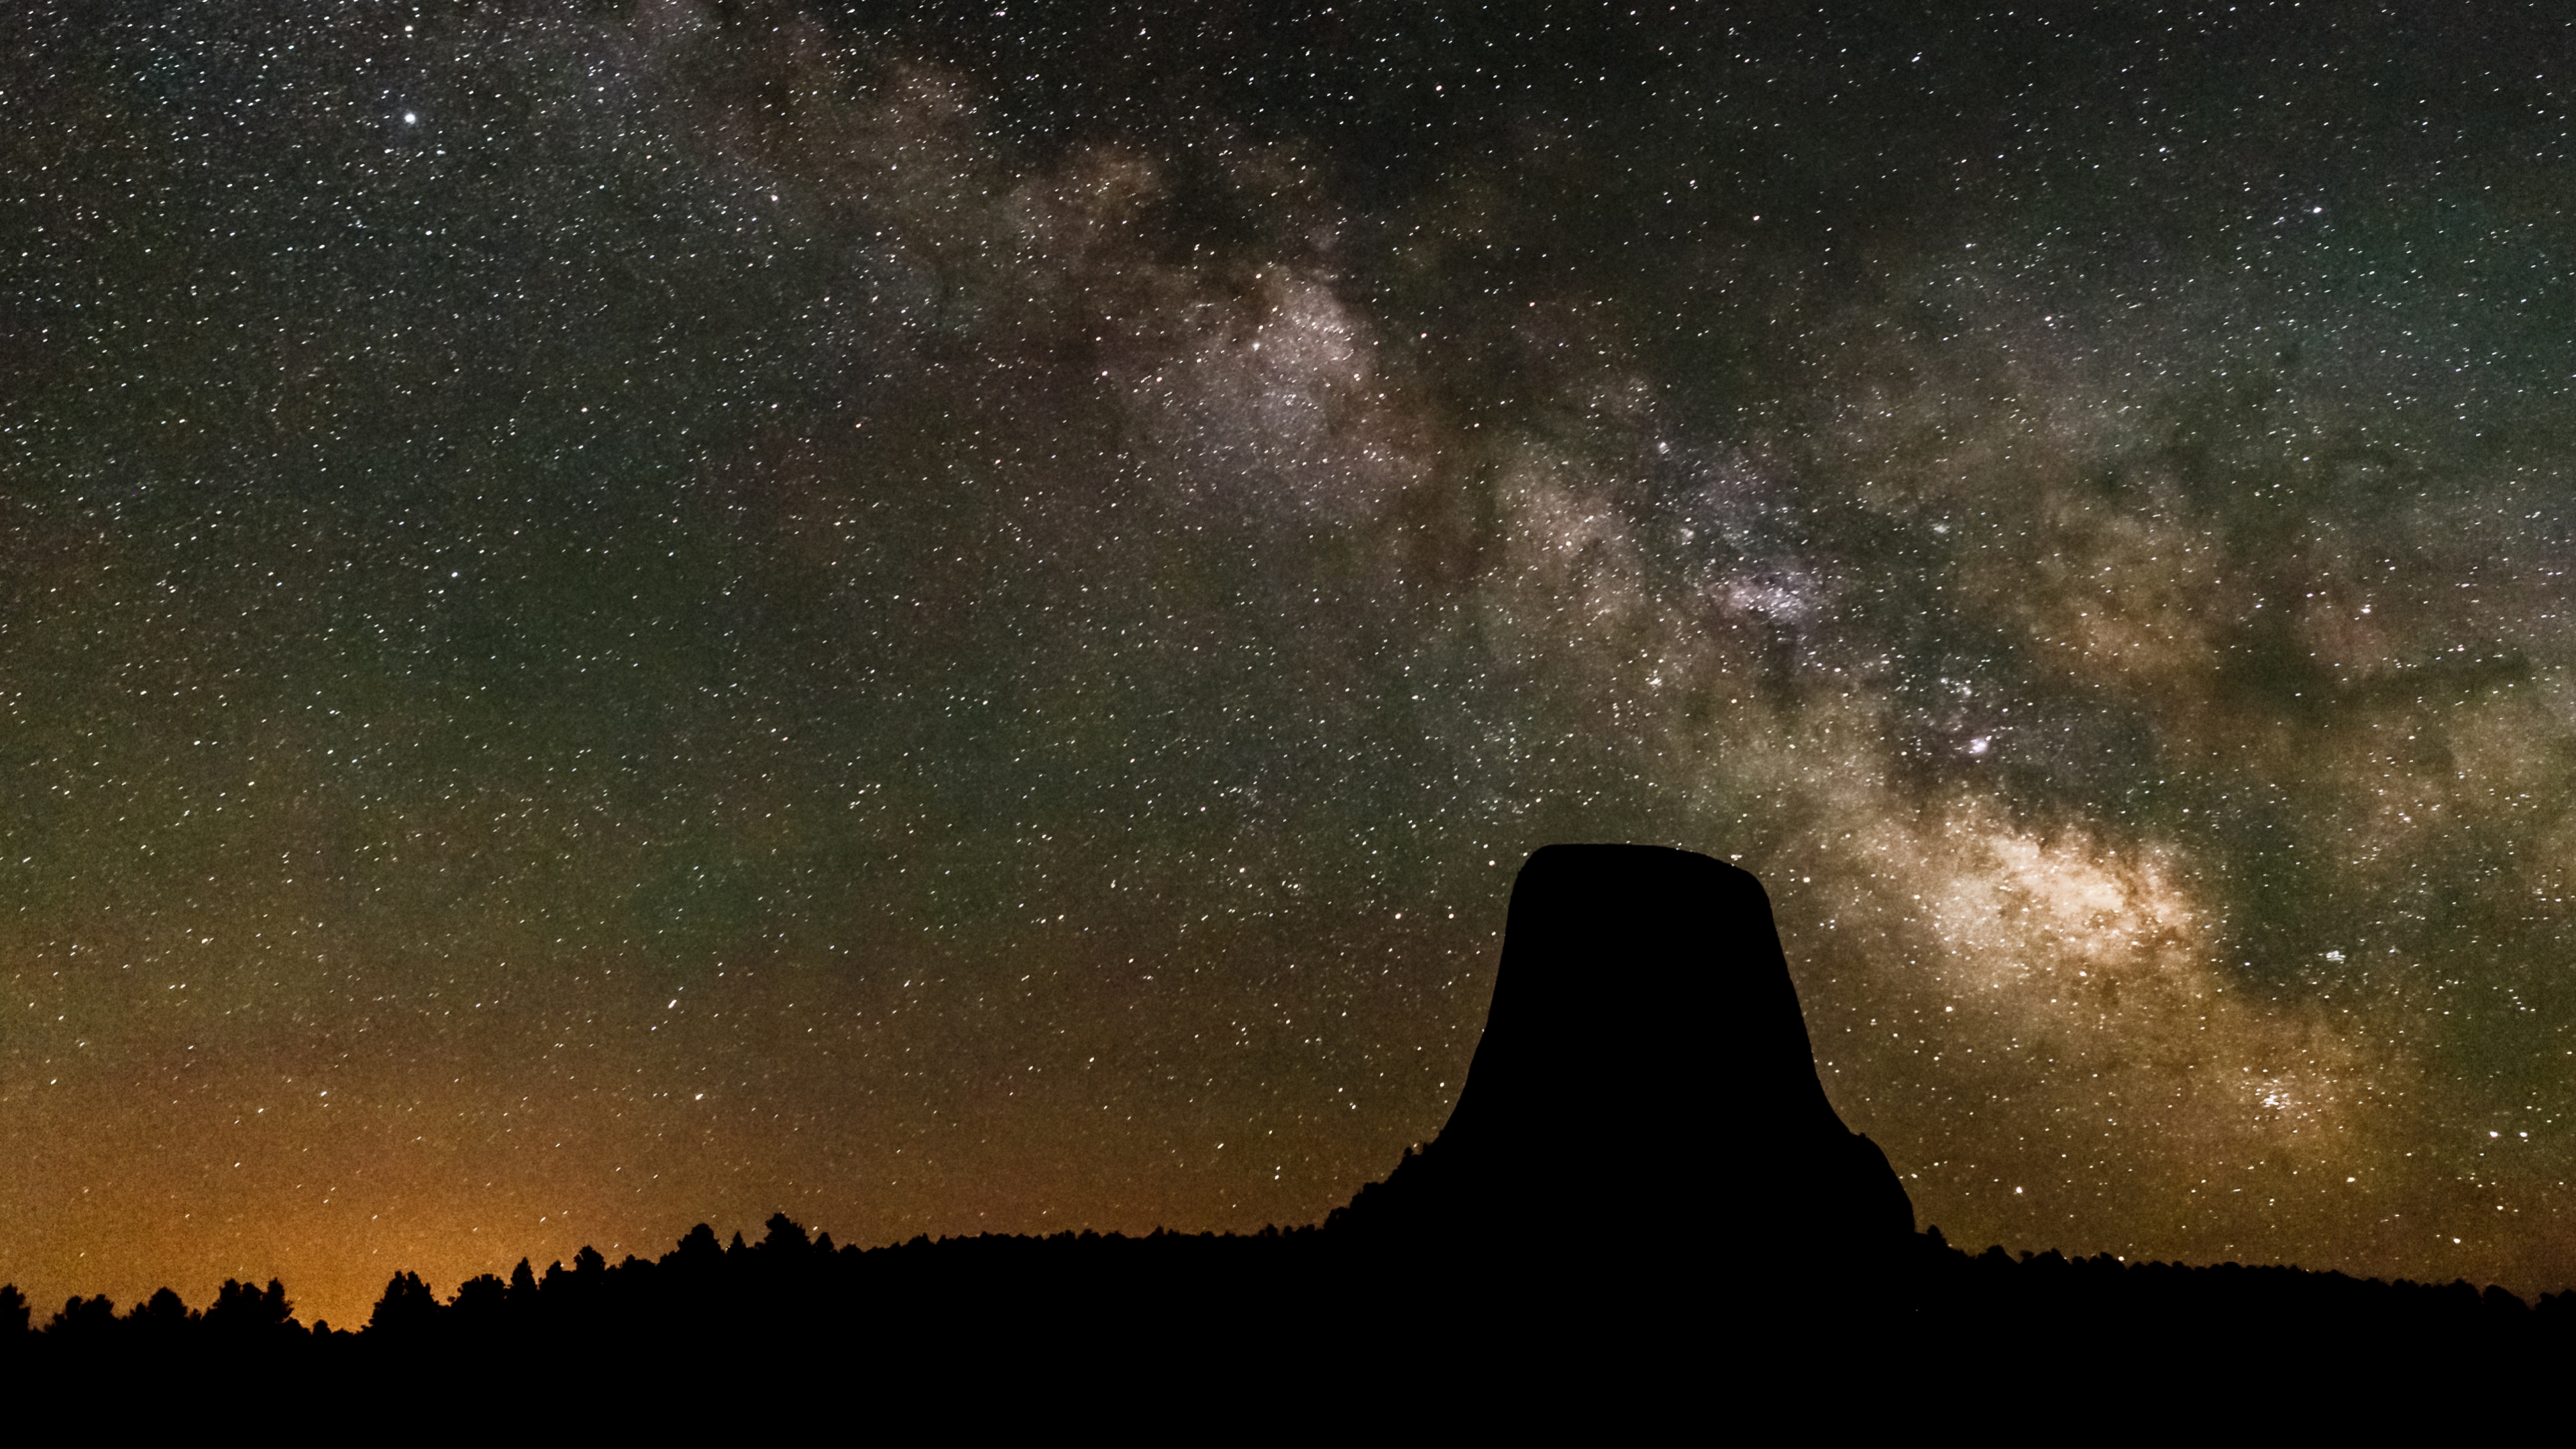 Milky Way in the night sky over Devil's Tower National Monument